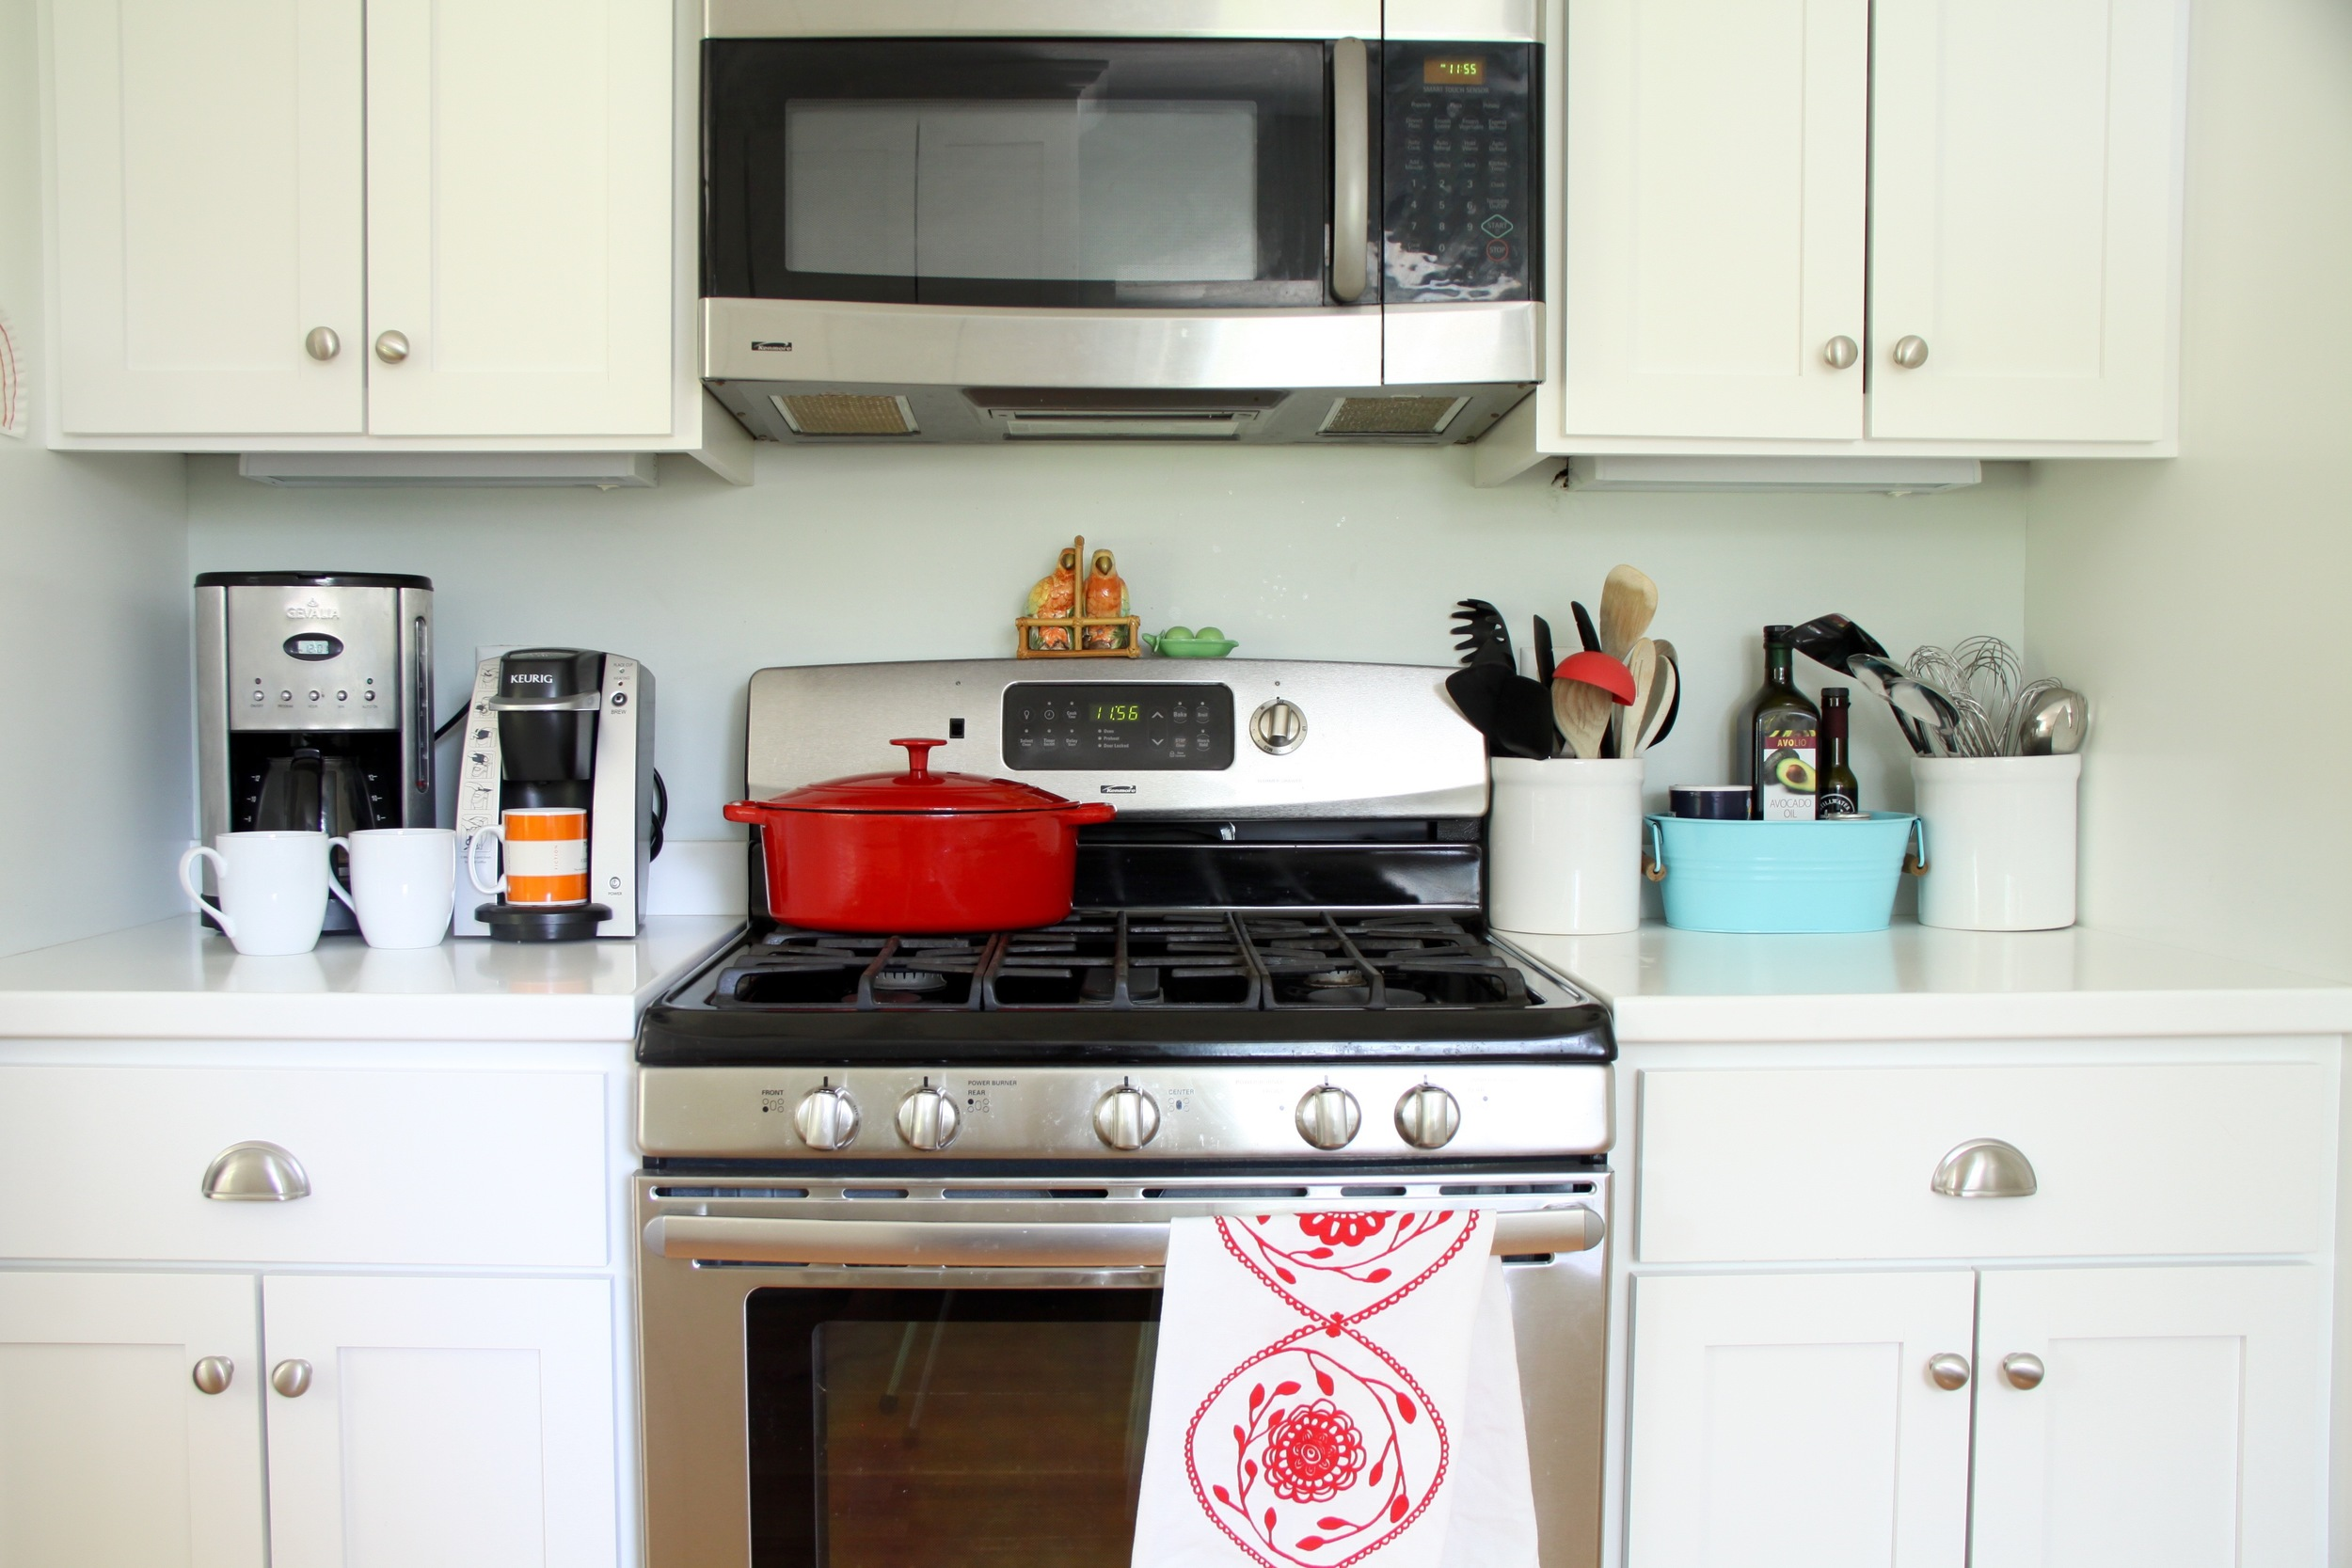 Kitchen Stove and Cooktop